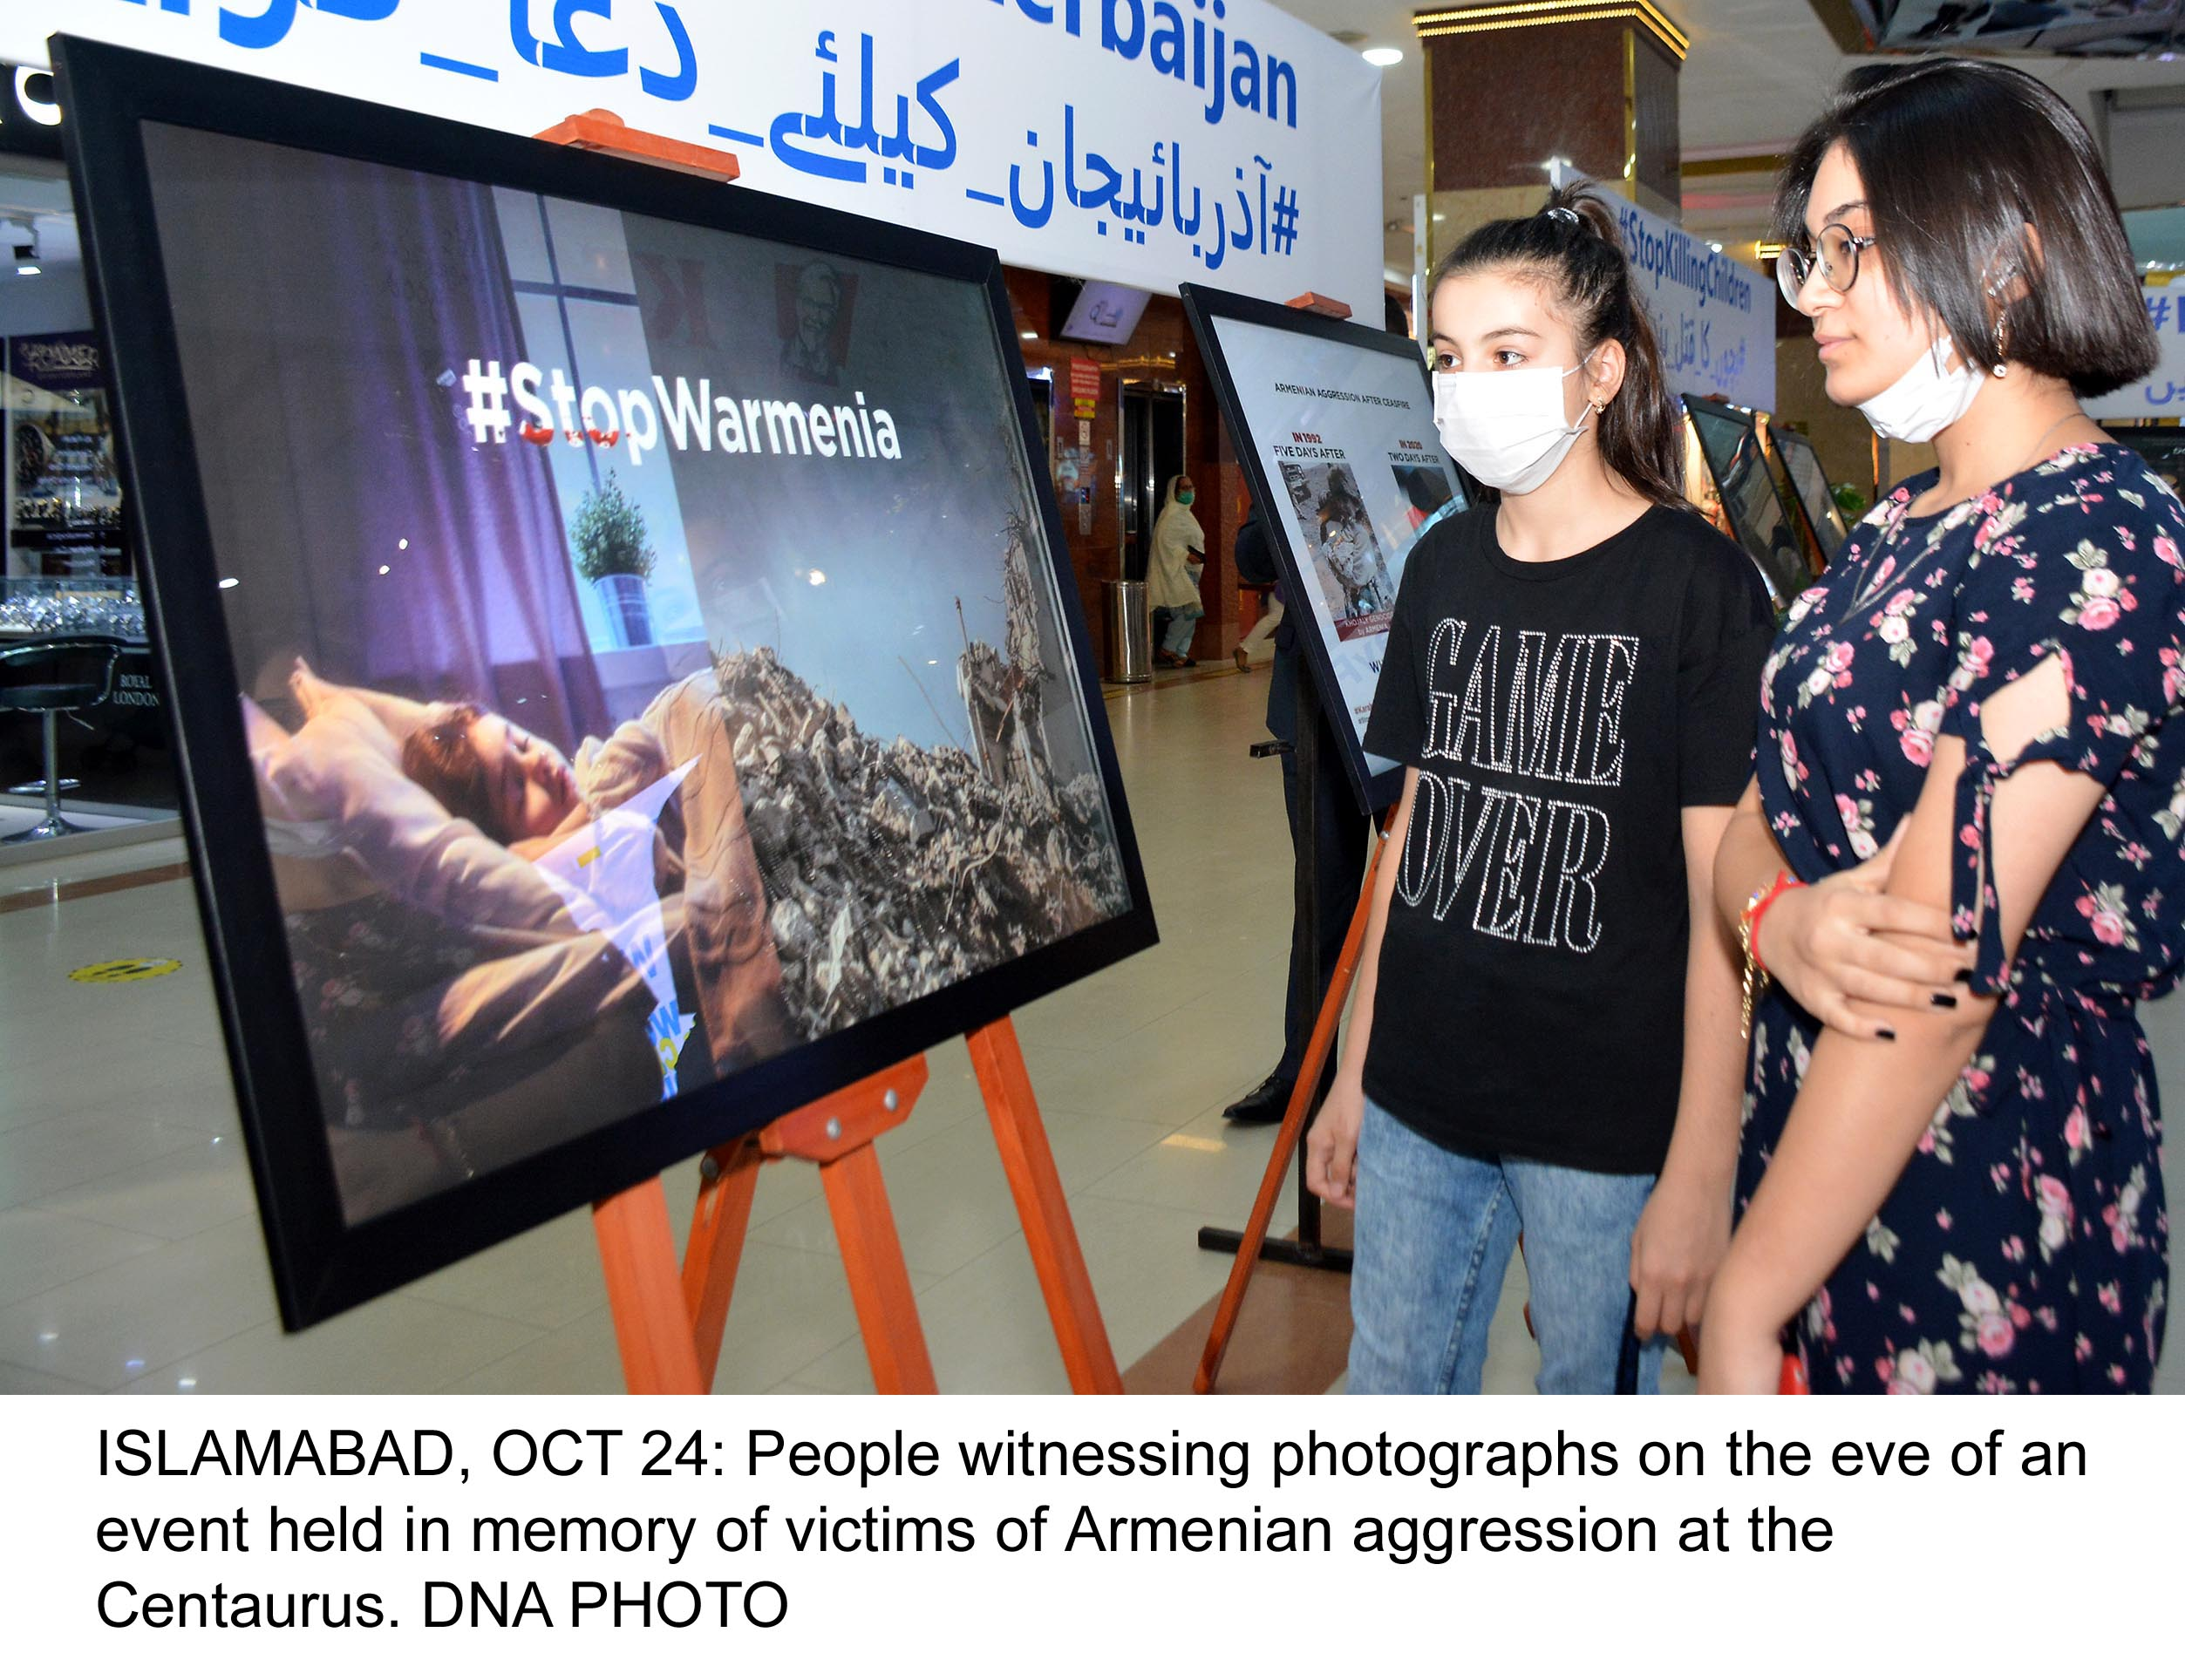 ISLAMABAD, OCT 24: People witnessing photographs on the eve of an event held in memory of victims of Armenian aggression at the Centaurus. DNA PHOTO